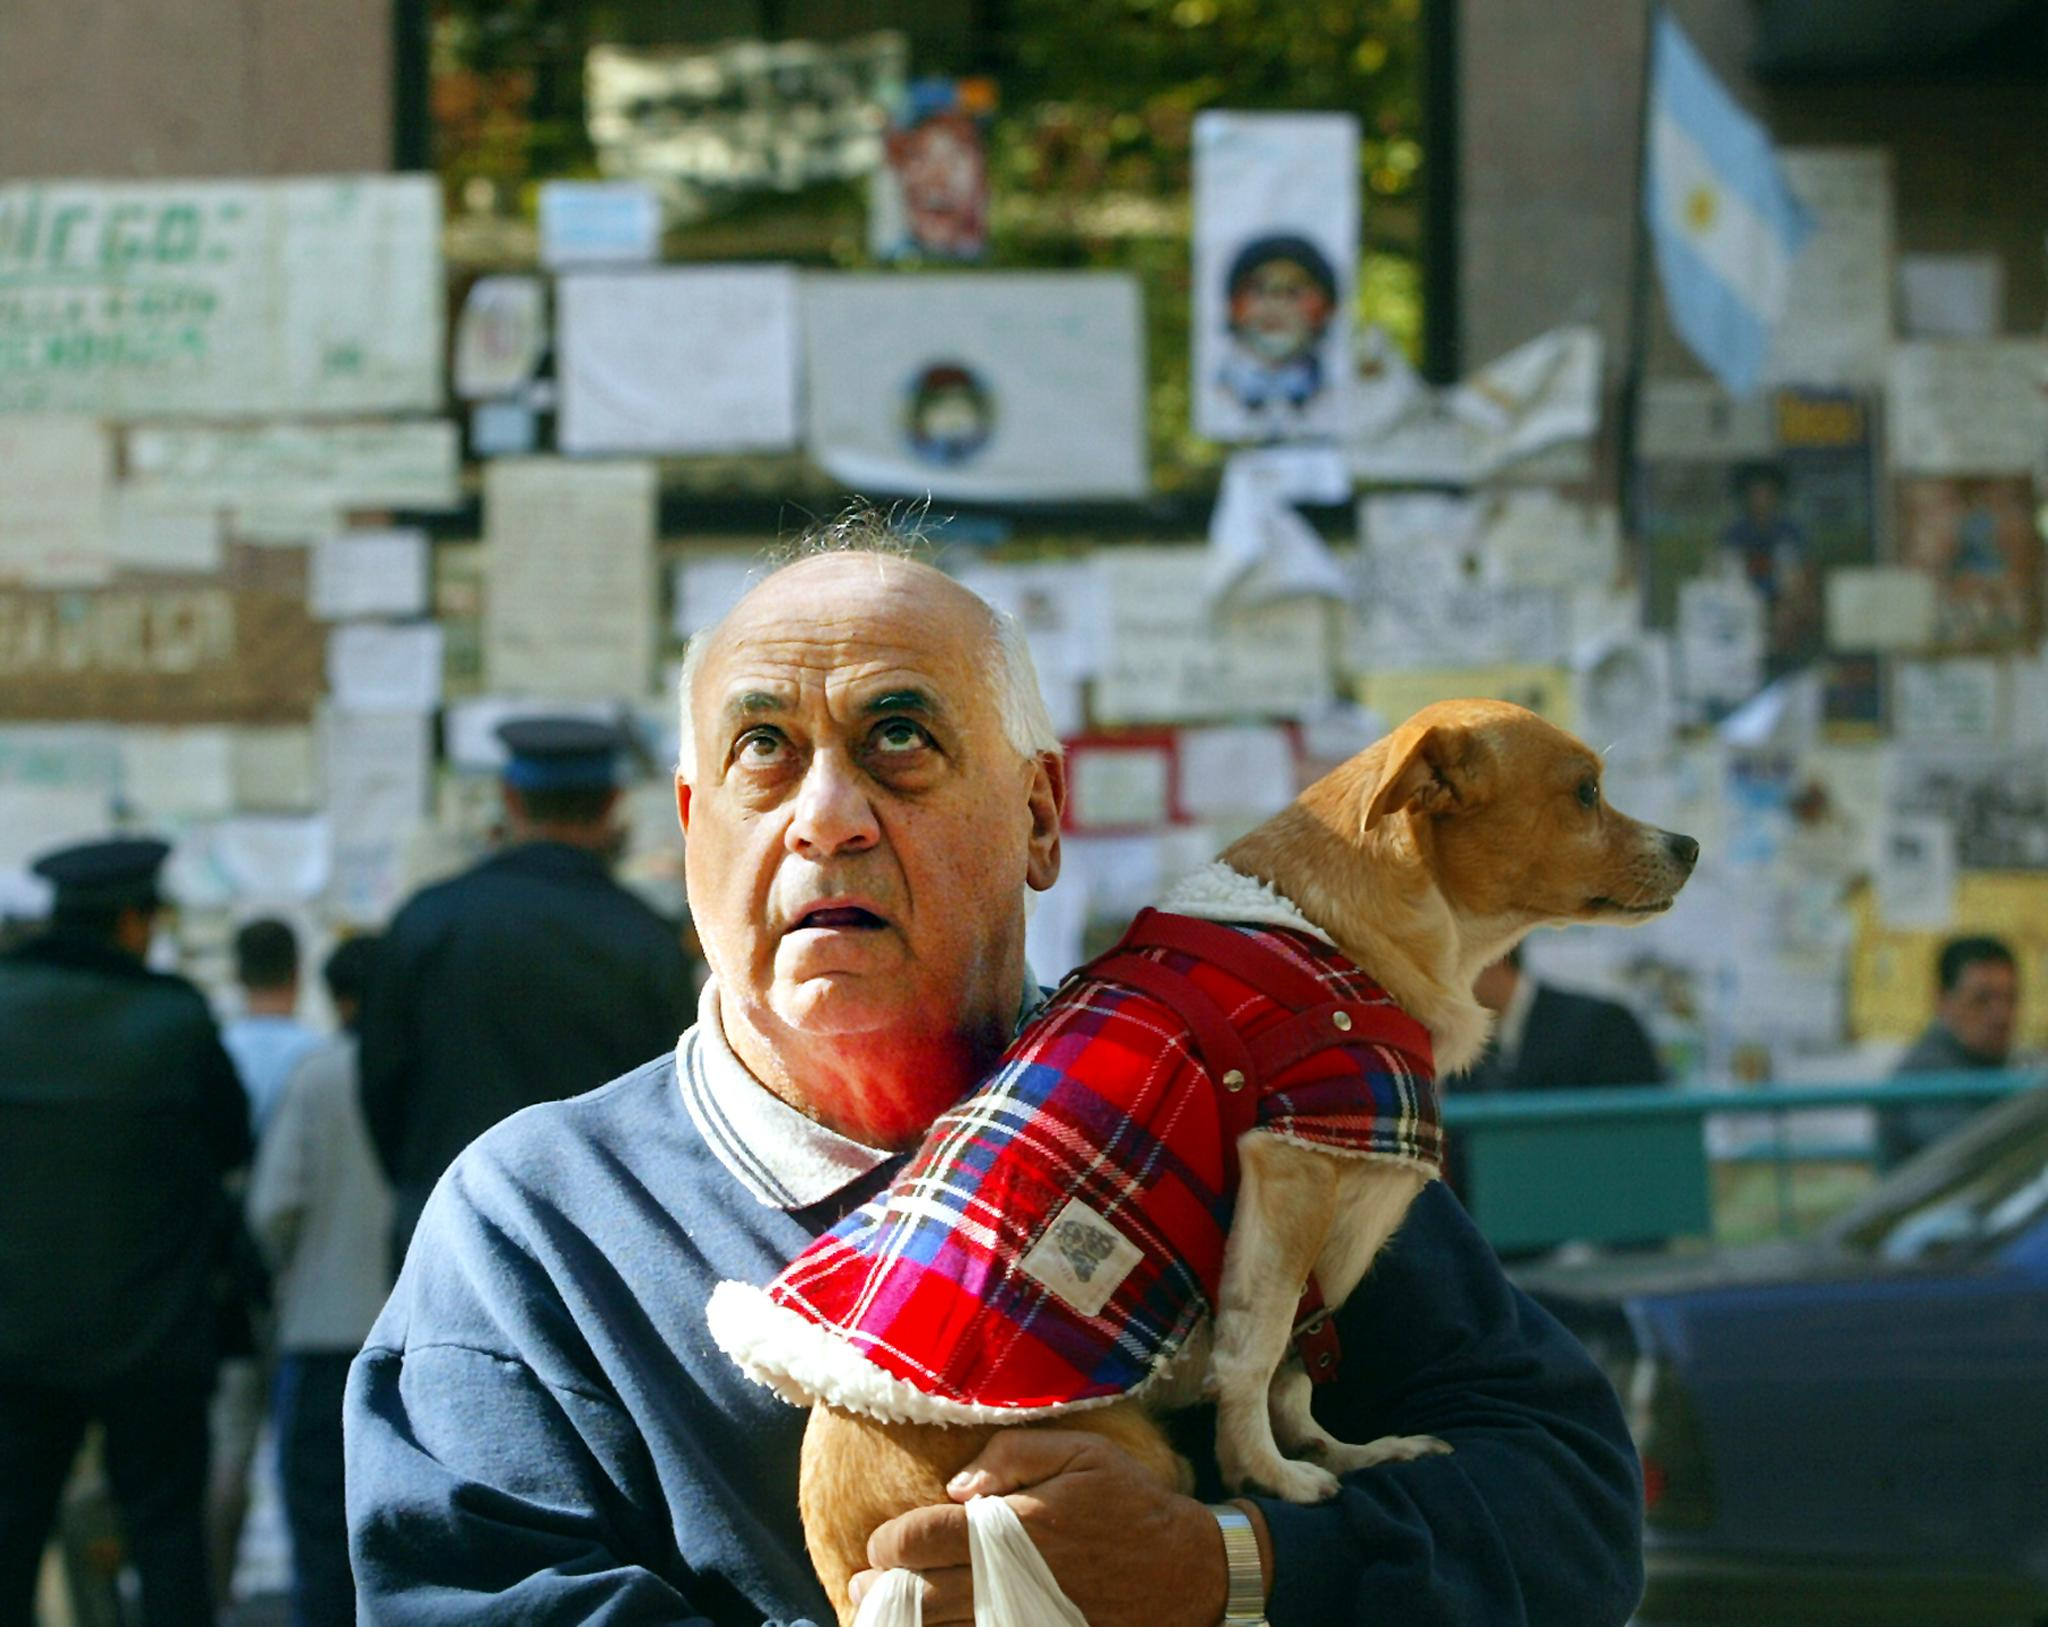 Buenos Aires inhabitant carrying a pet dog